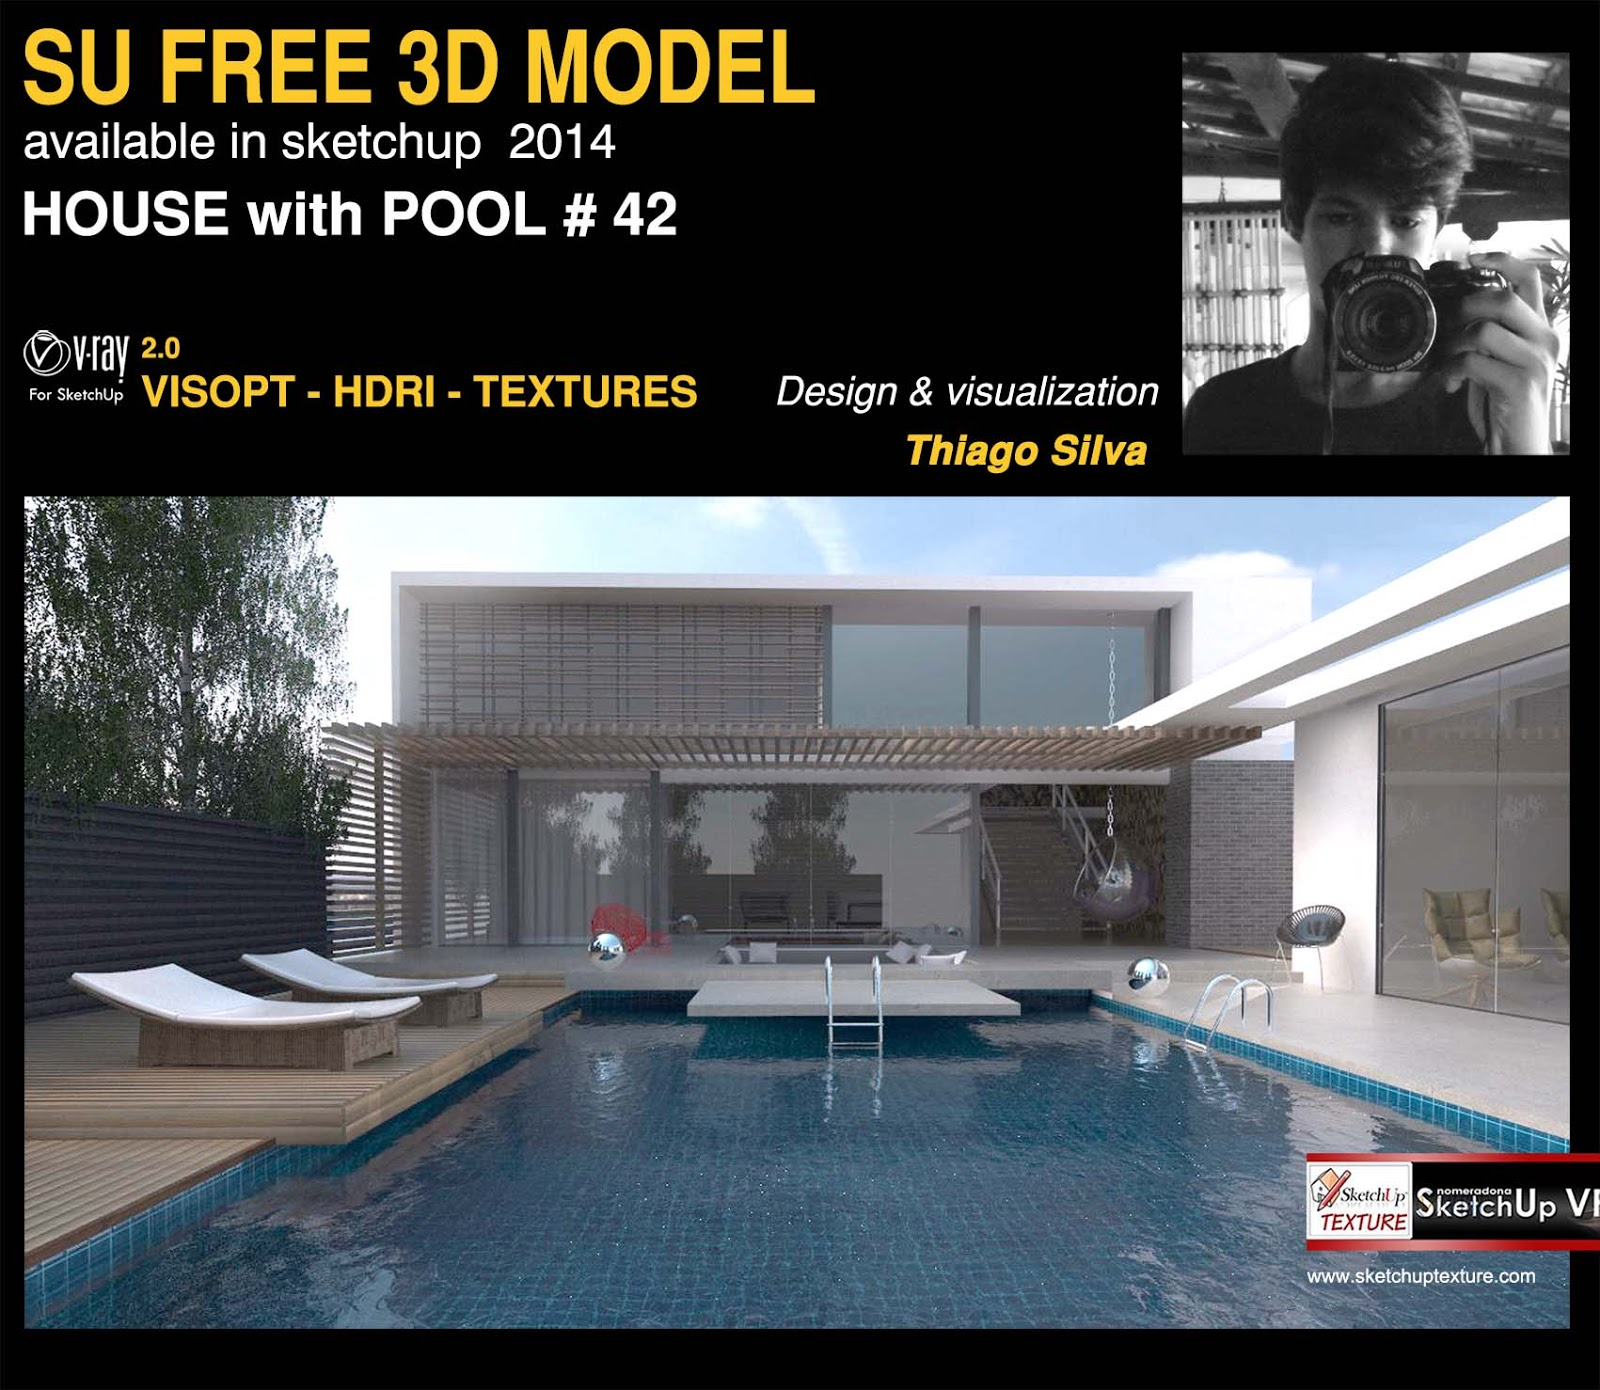 Sketchup texture free sketchup 3d model house with pool for 3d pool design online free